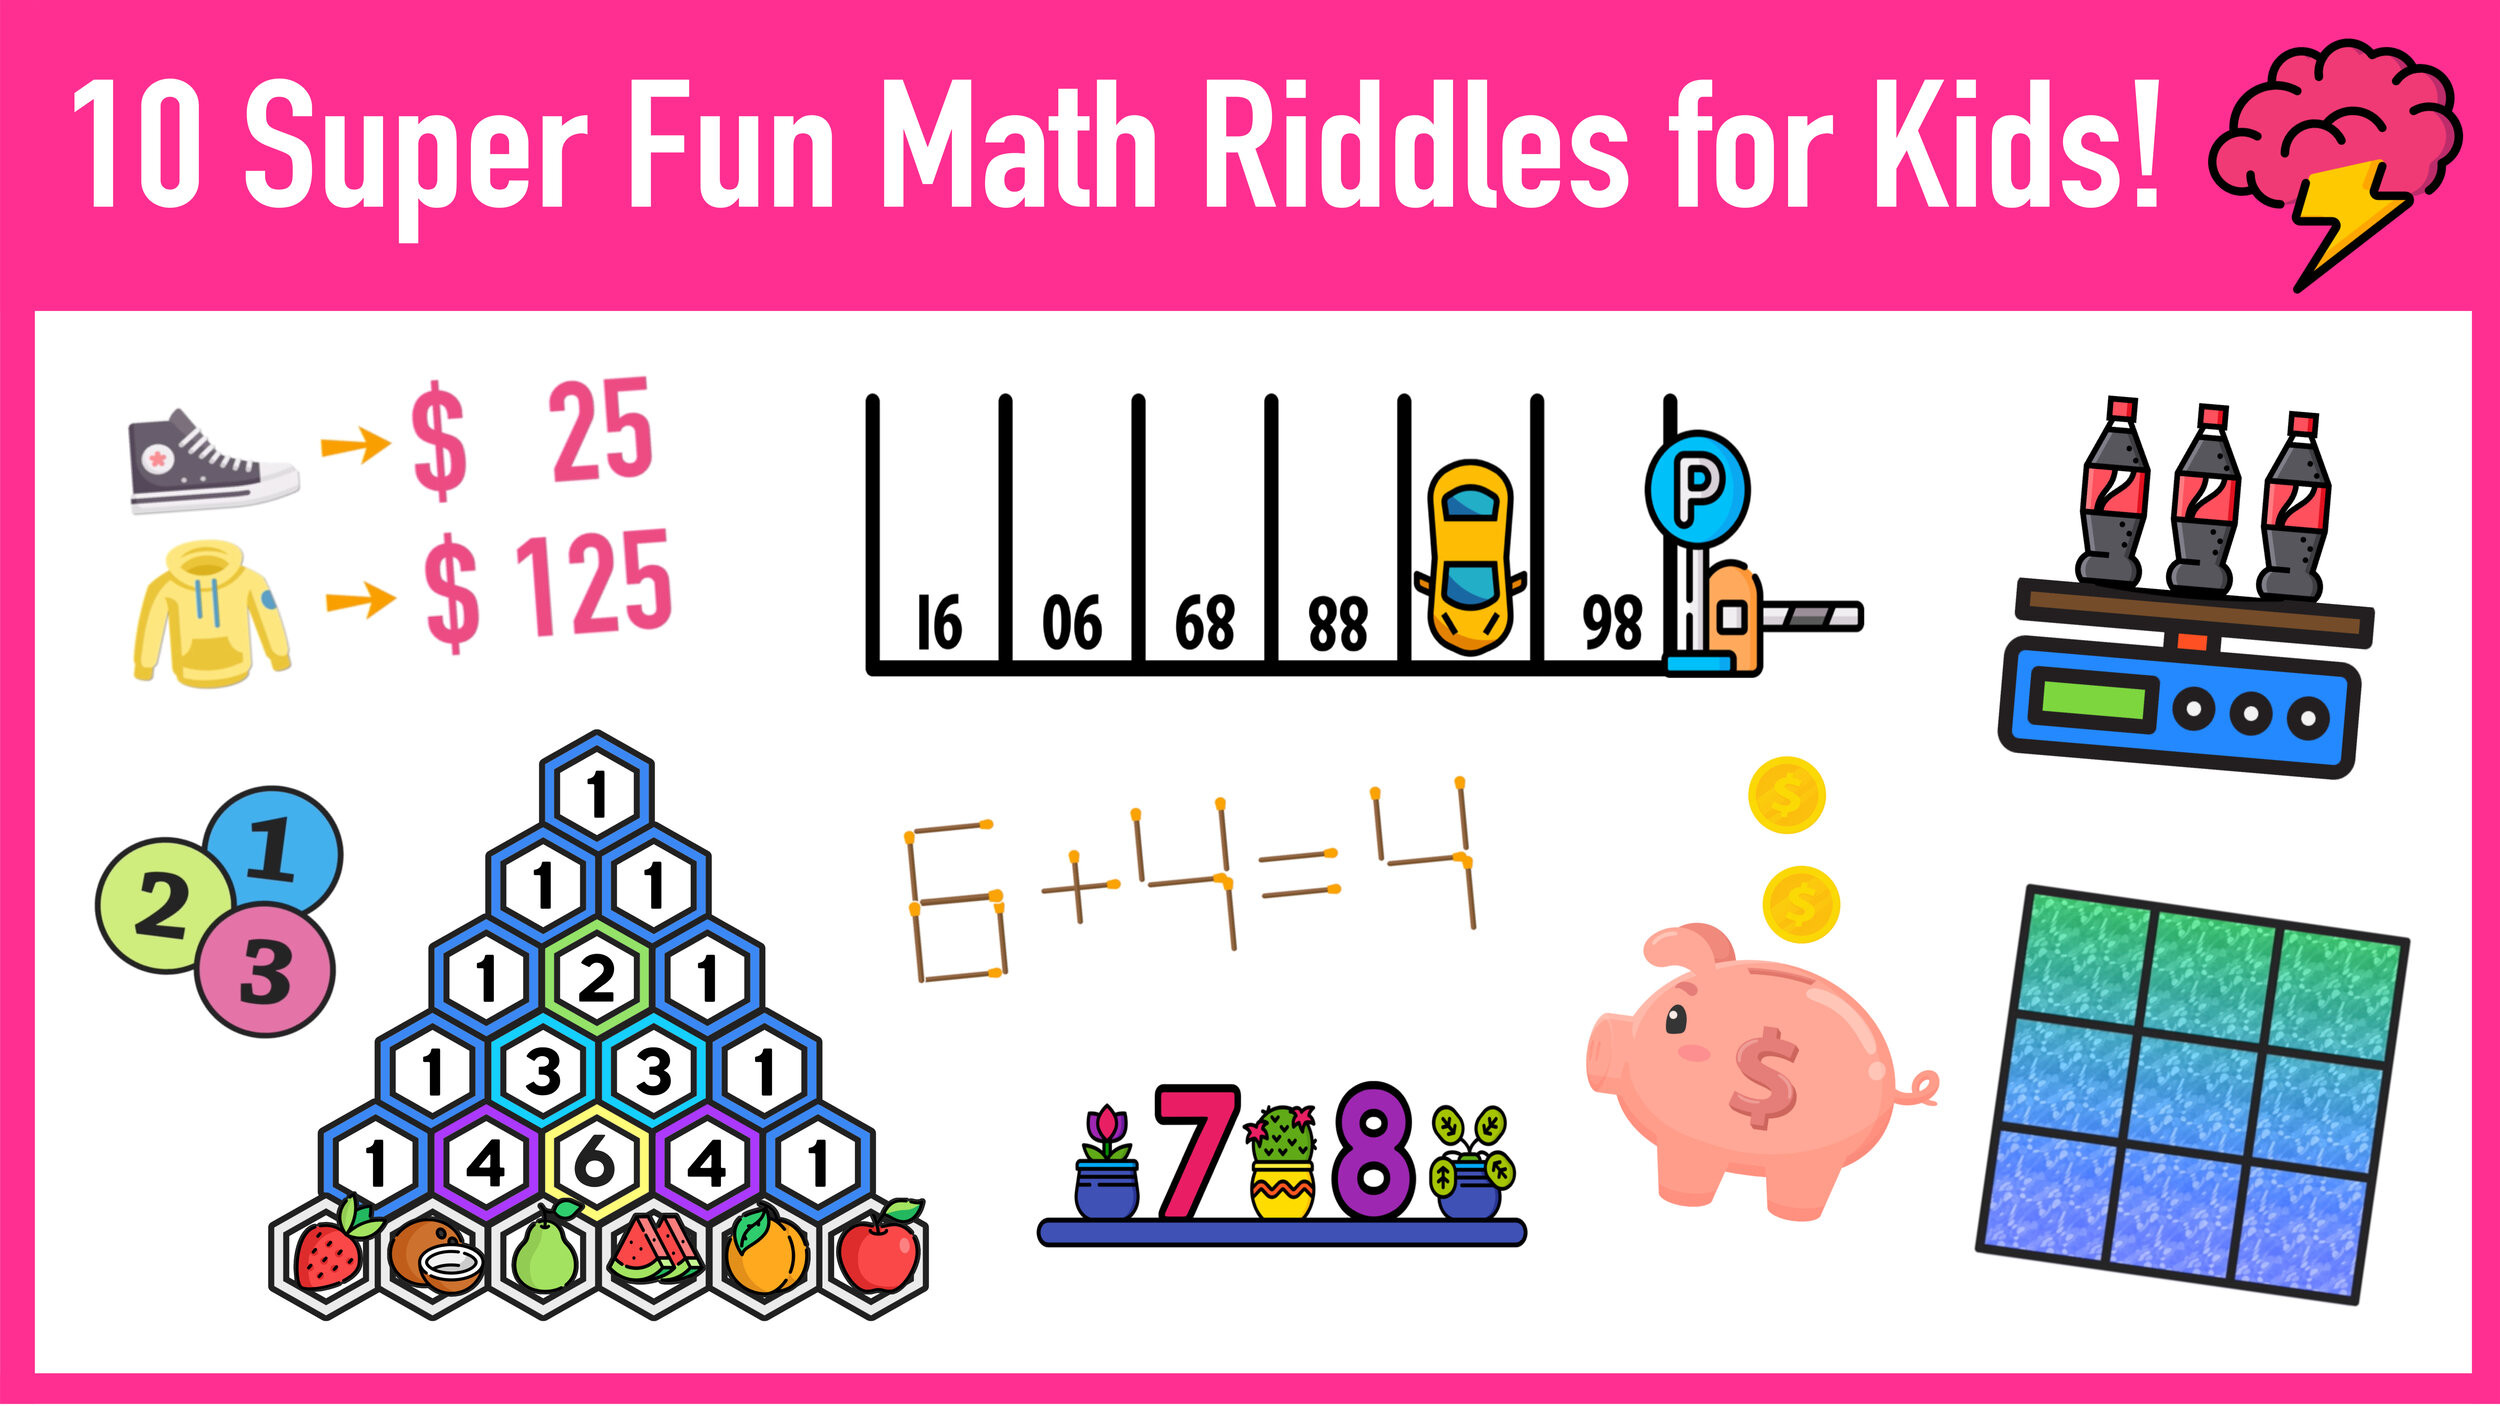 6th Grade Math Puzzles Printable 10 Super Fun Math Riddles for Kids Ages 10 with Answers